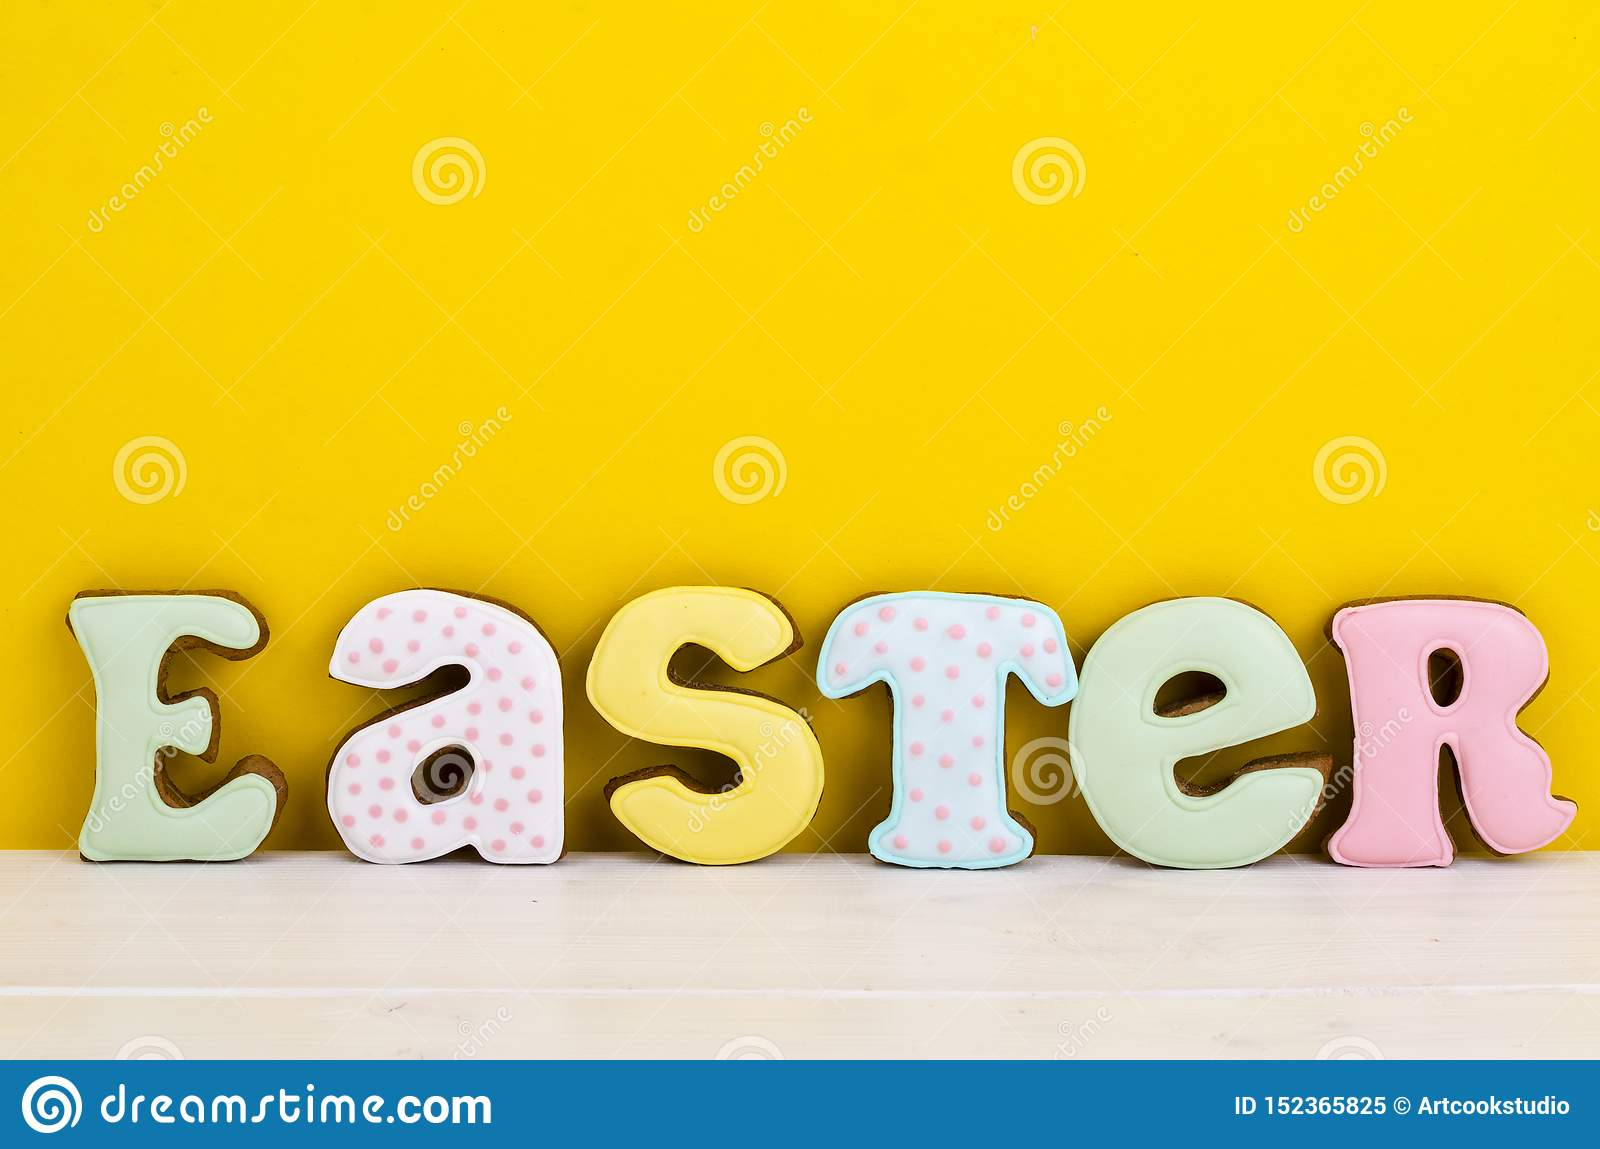 Bright Easter background. Decoration eggs and colorful letters forming words EASTER. Celebration concept.